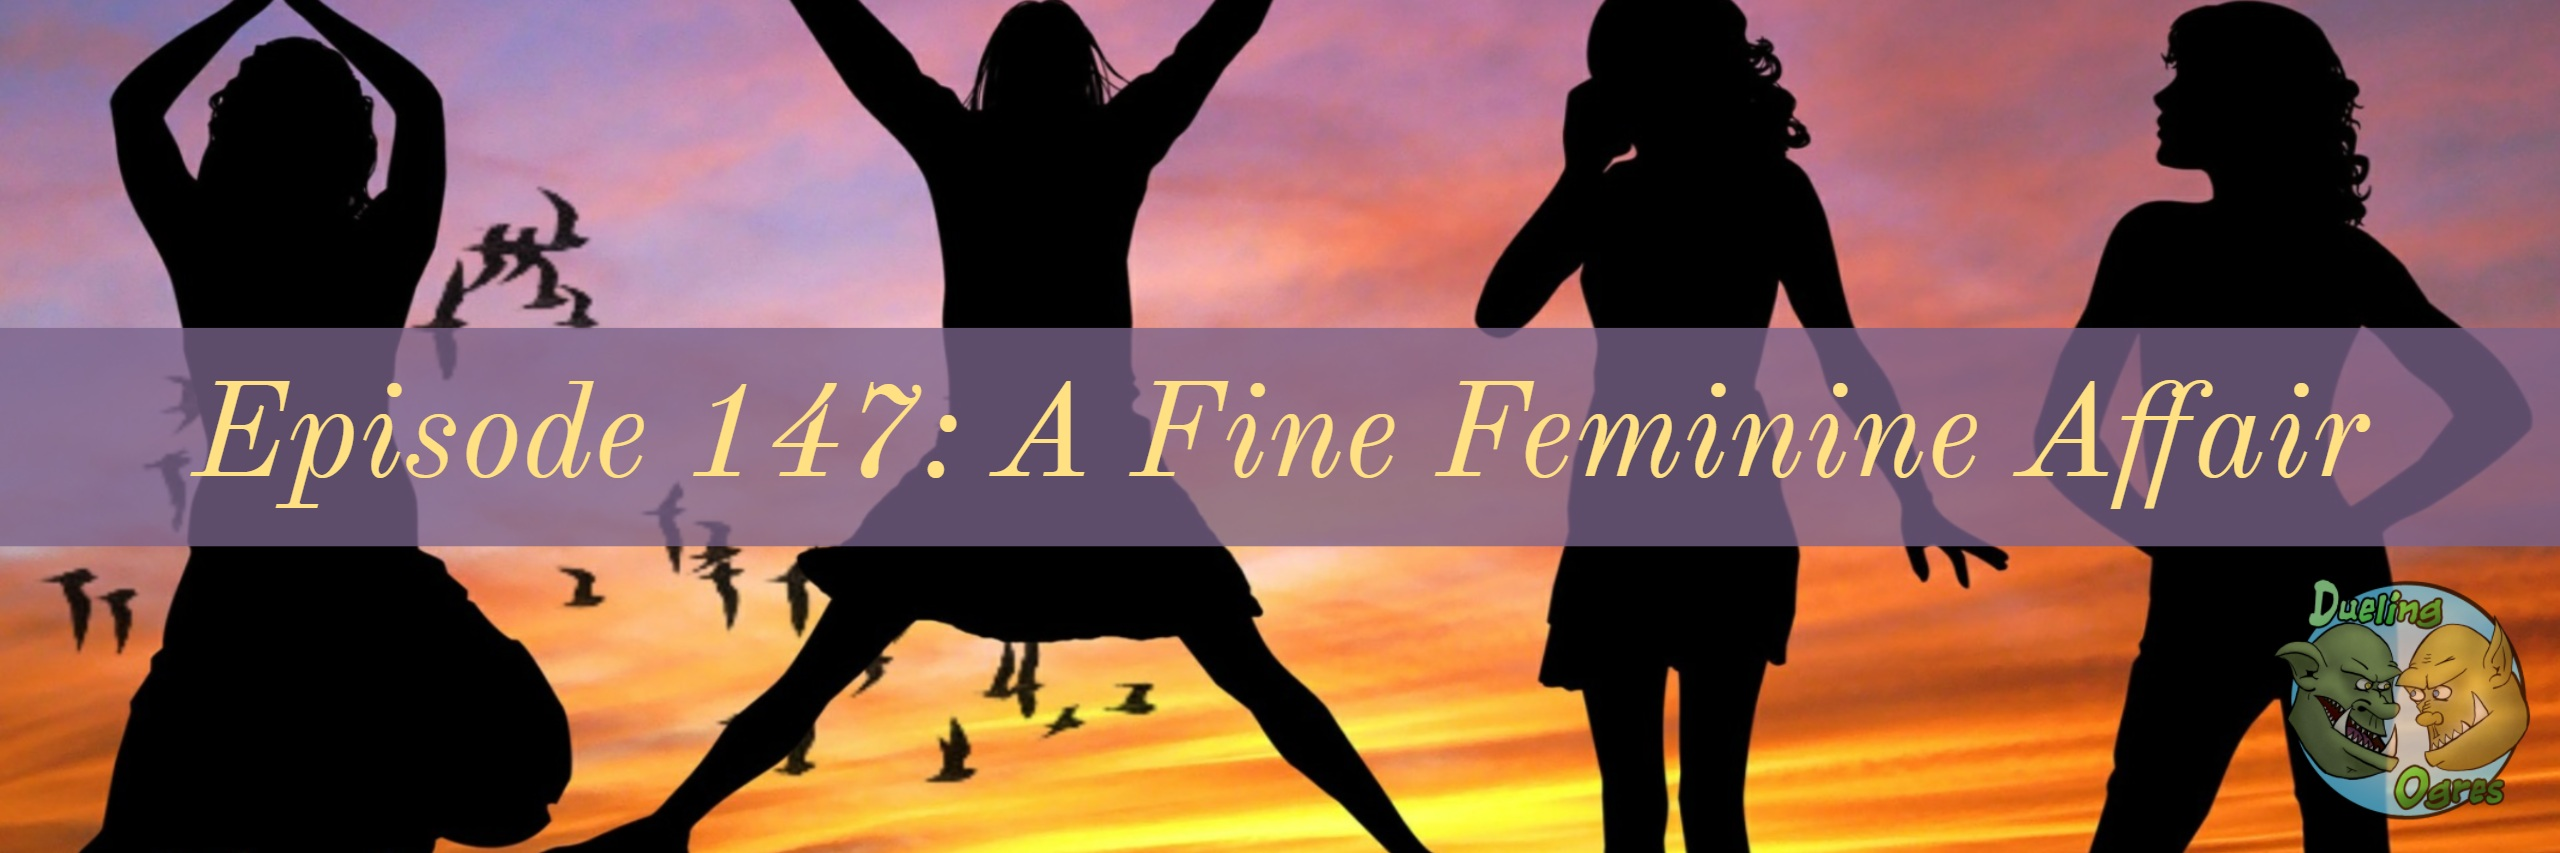 Episode 147: A Fine Feminine Affair